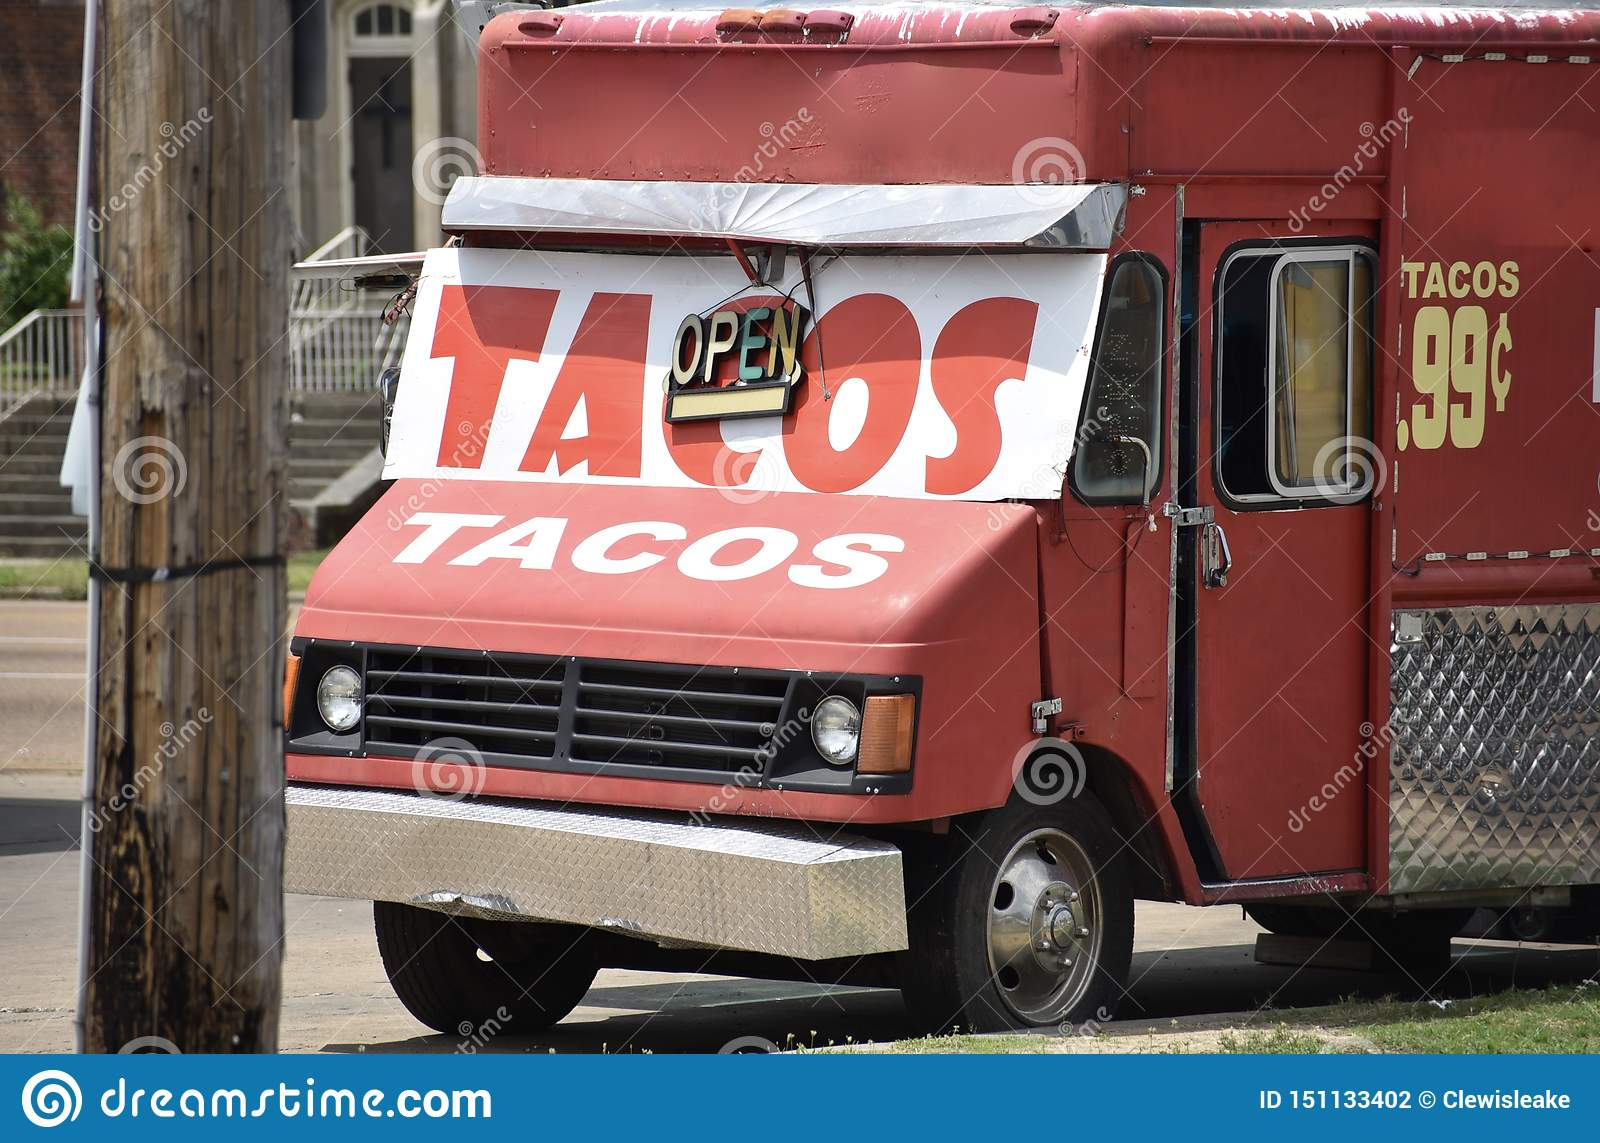 Tacos Food Truck Stock Photo Image Of Dish Diner Cuisine 151133402